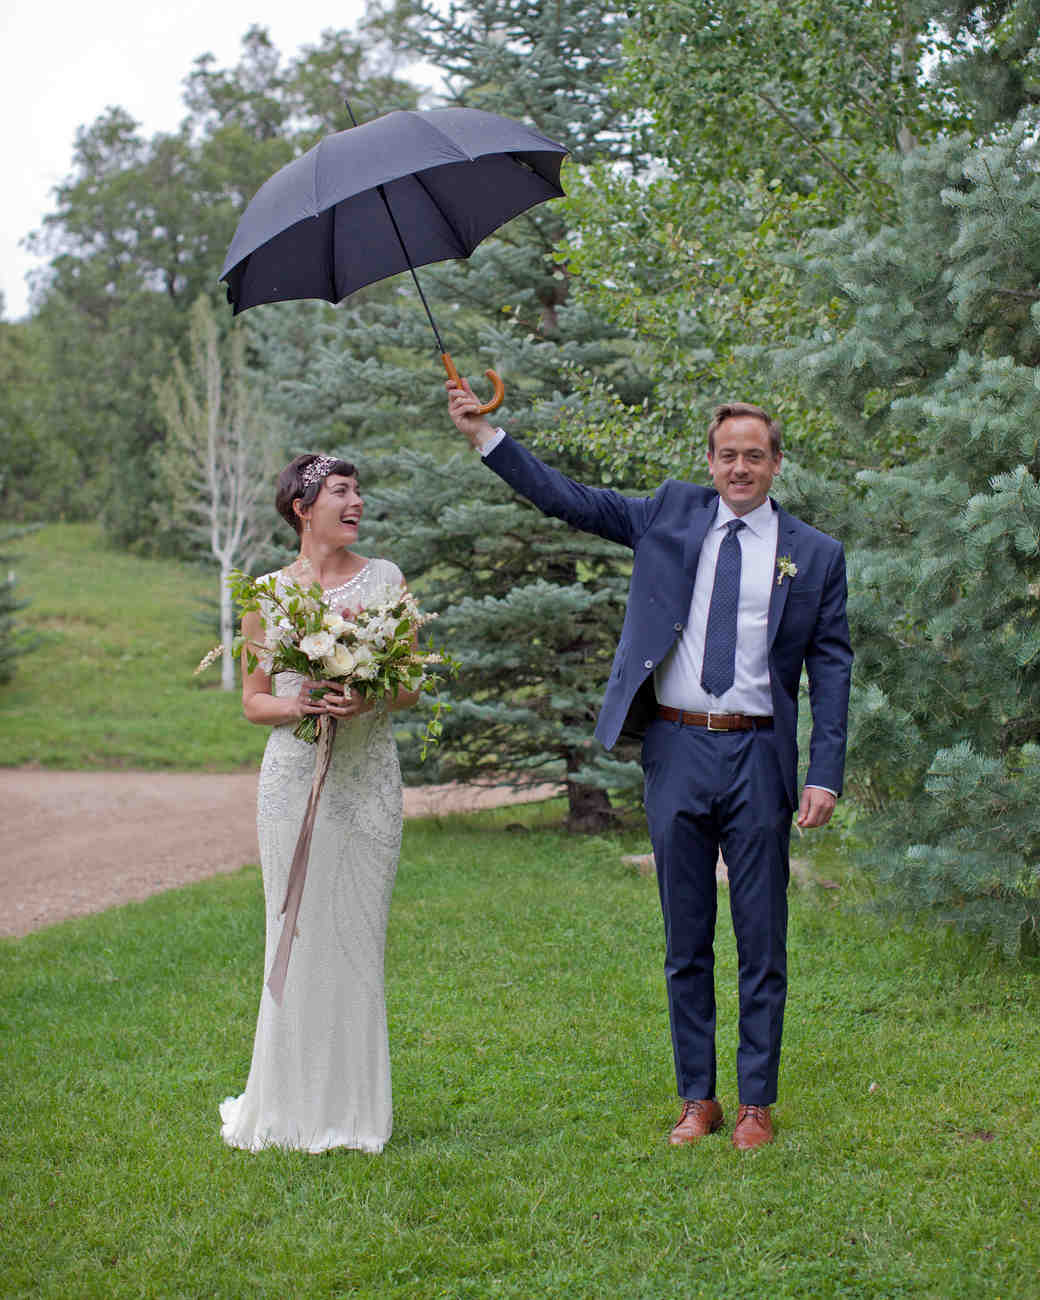 lizzy-pat-wedding-umbrella-050-s111777-0115.jpg